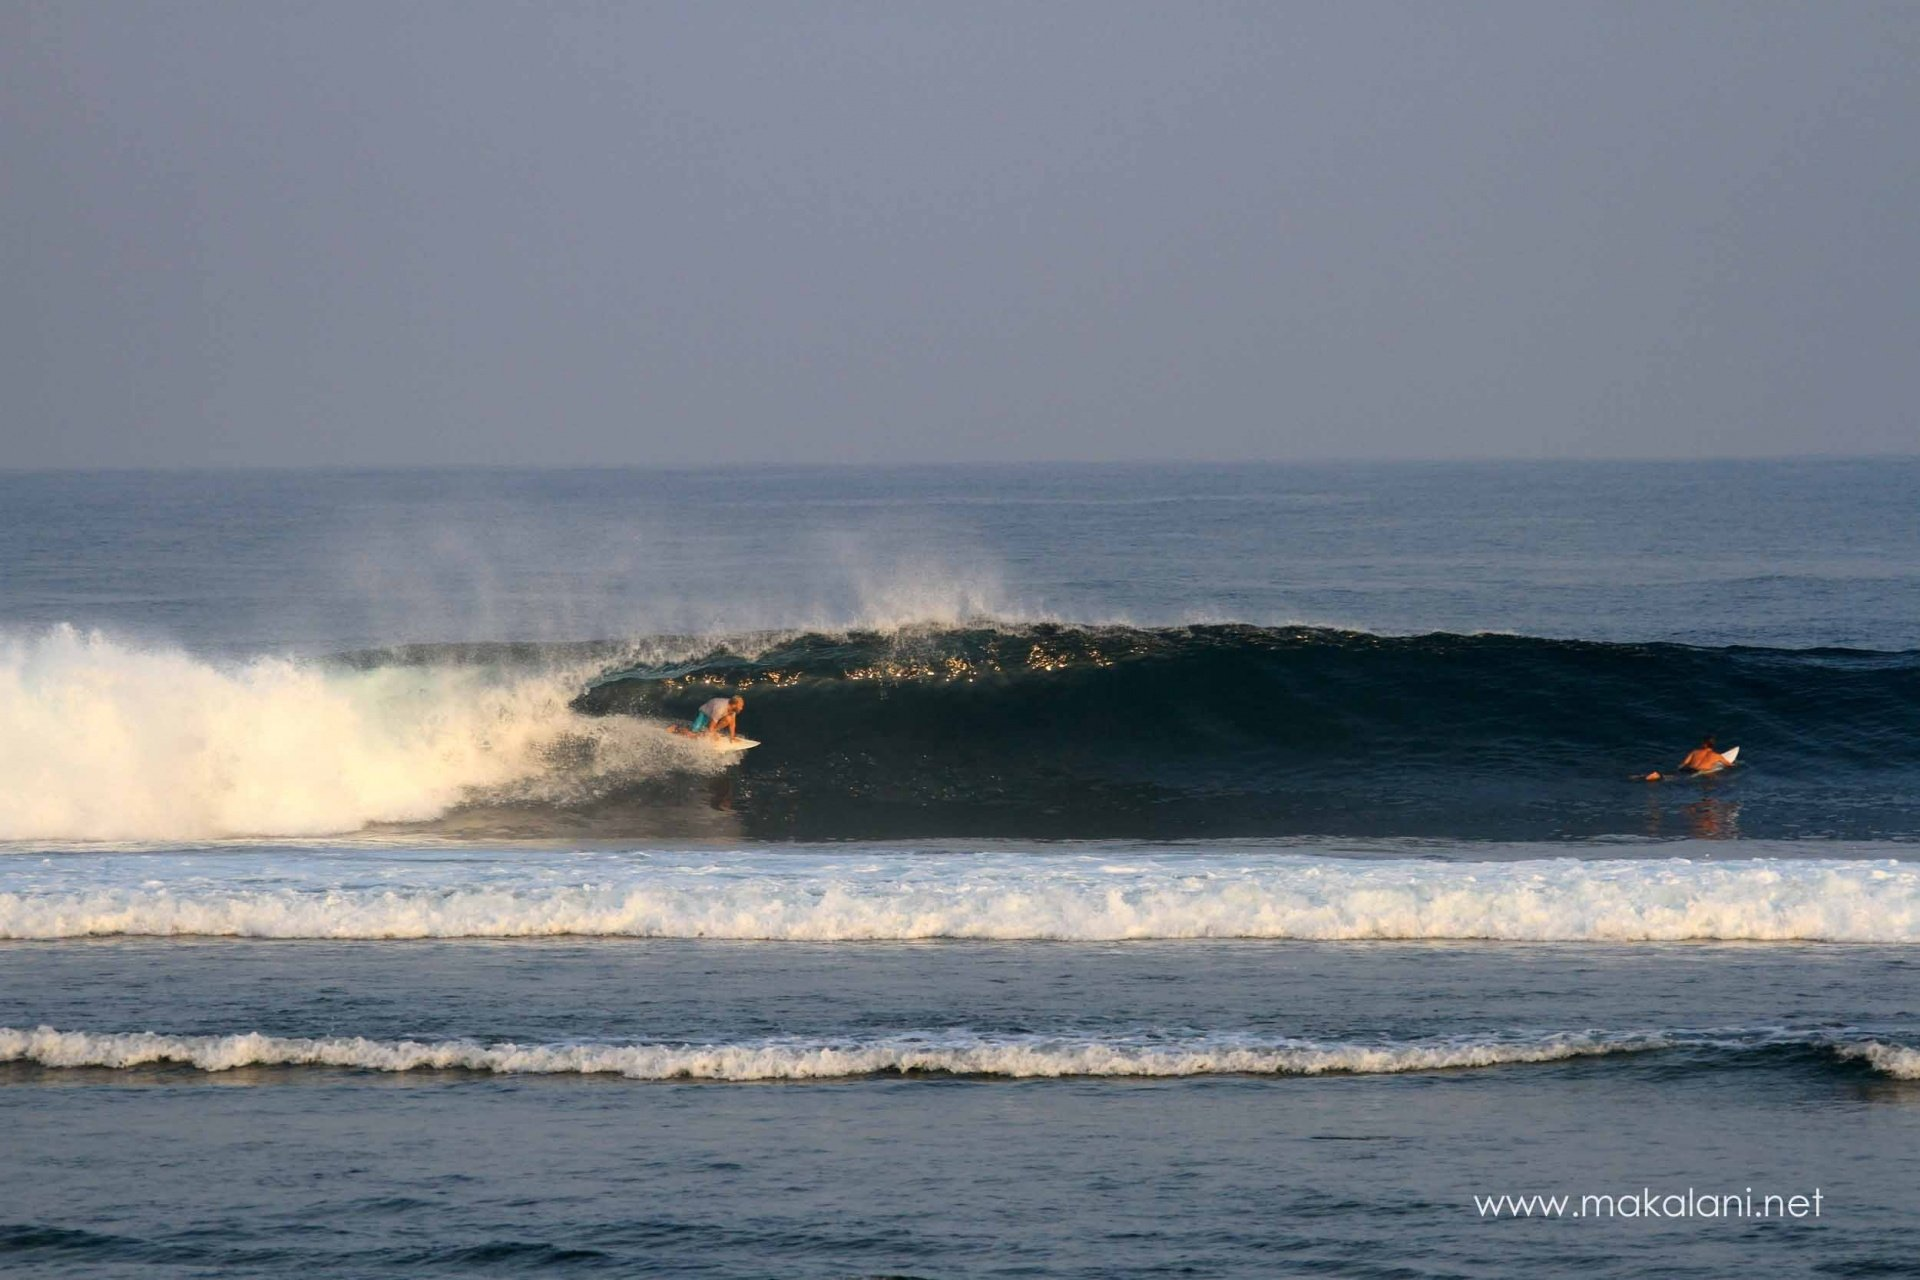 www.makalani.net's photo of Ujung Bocur